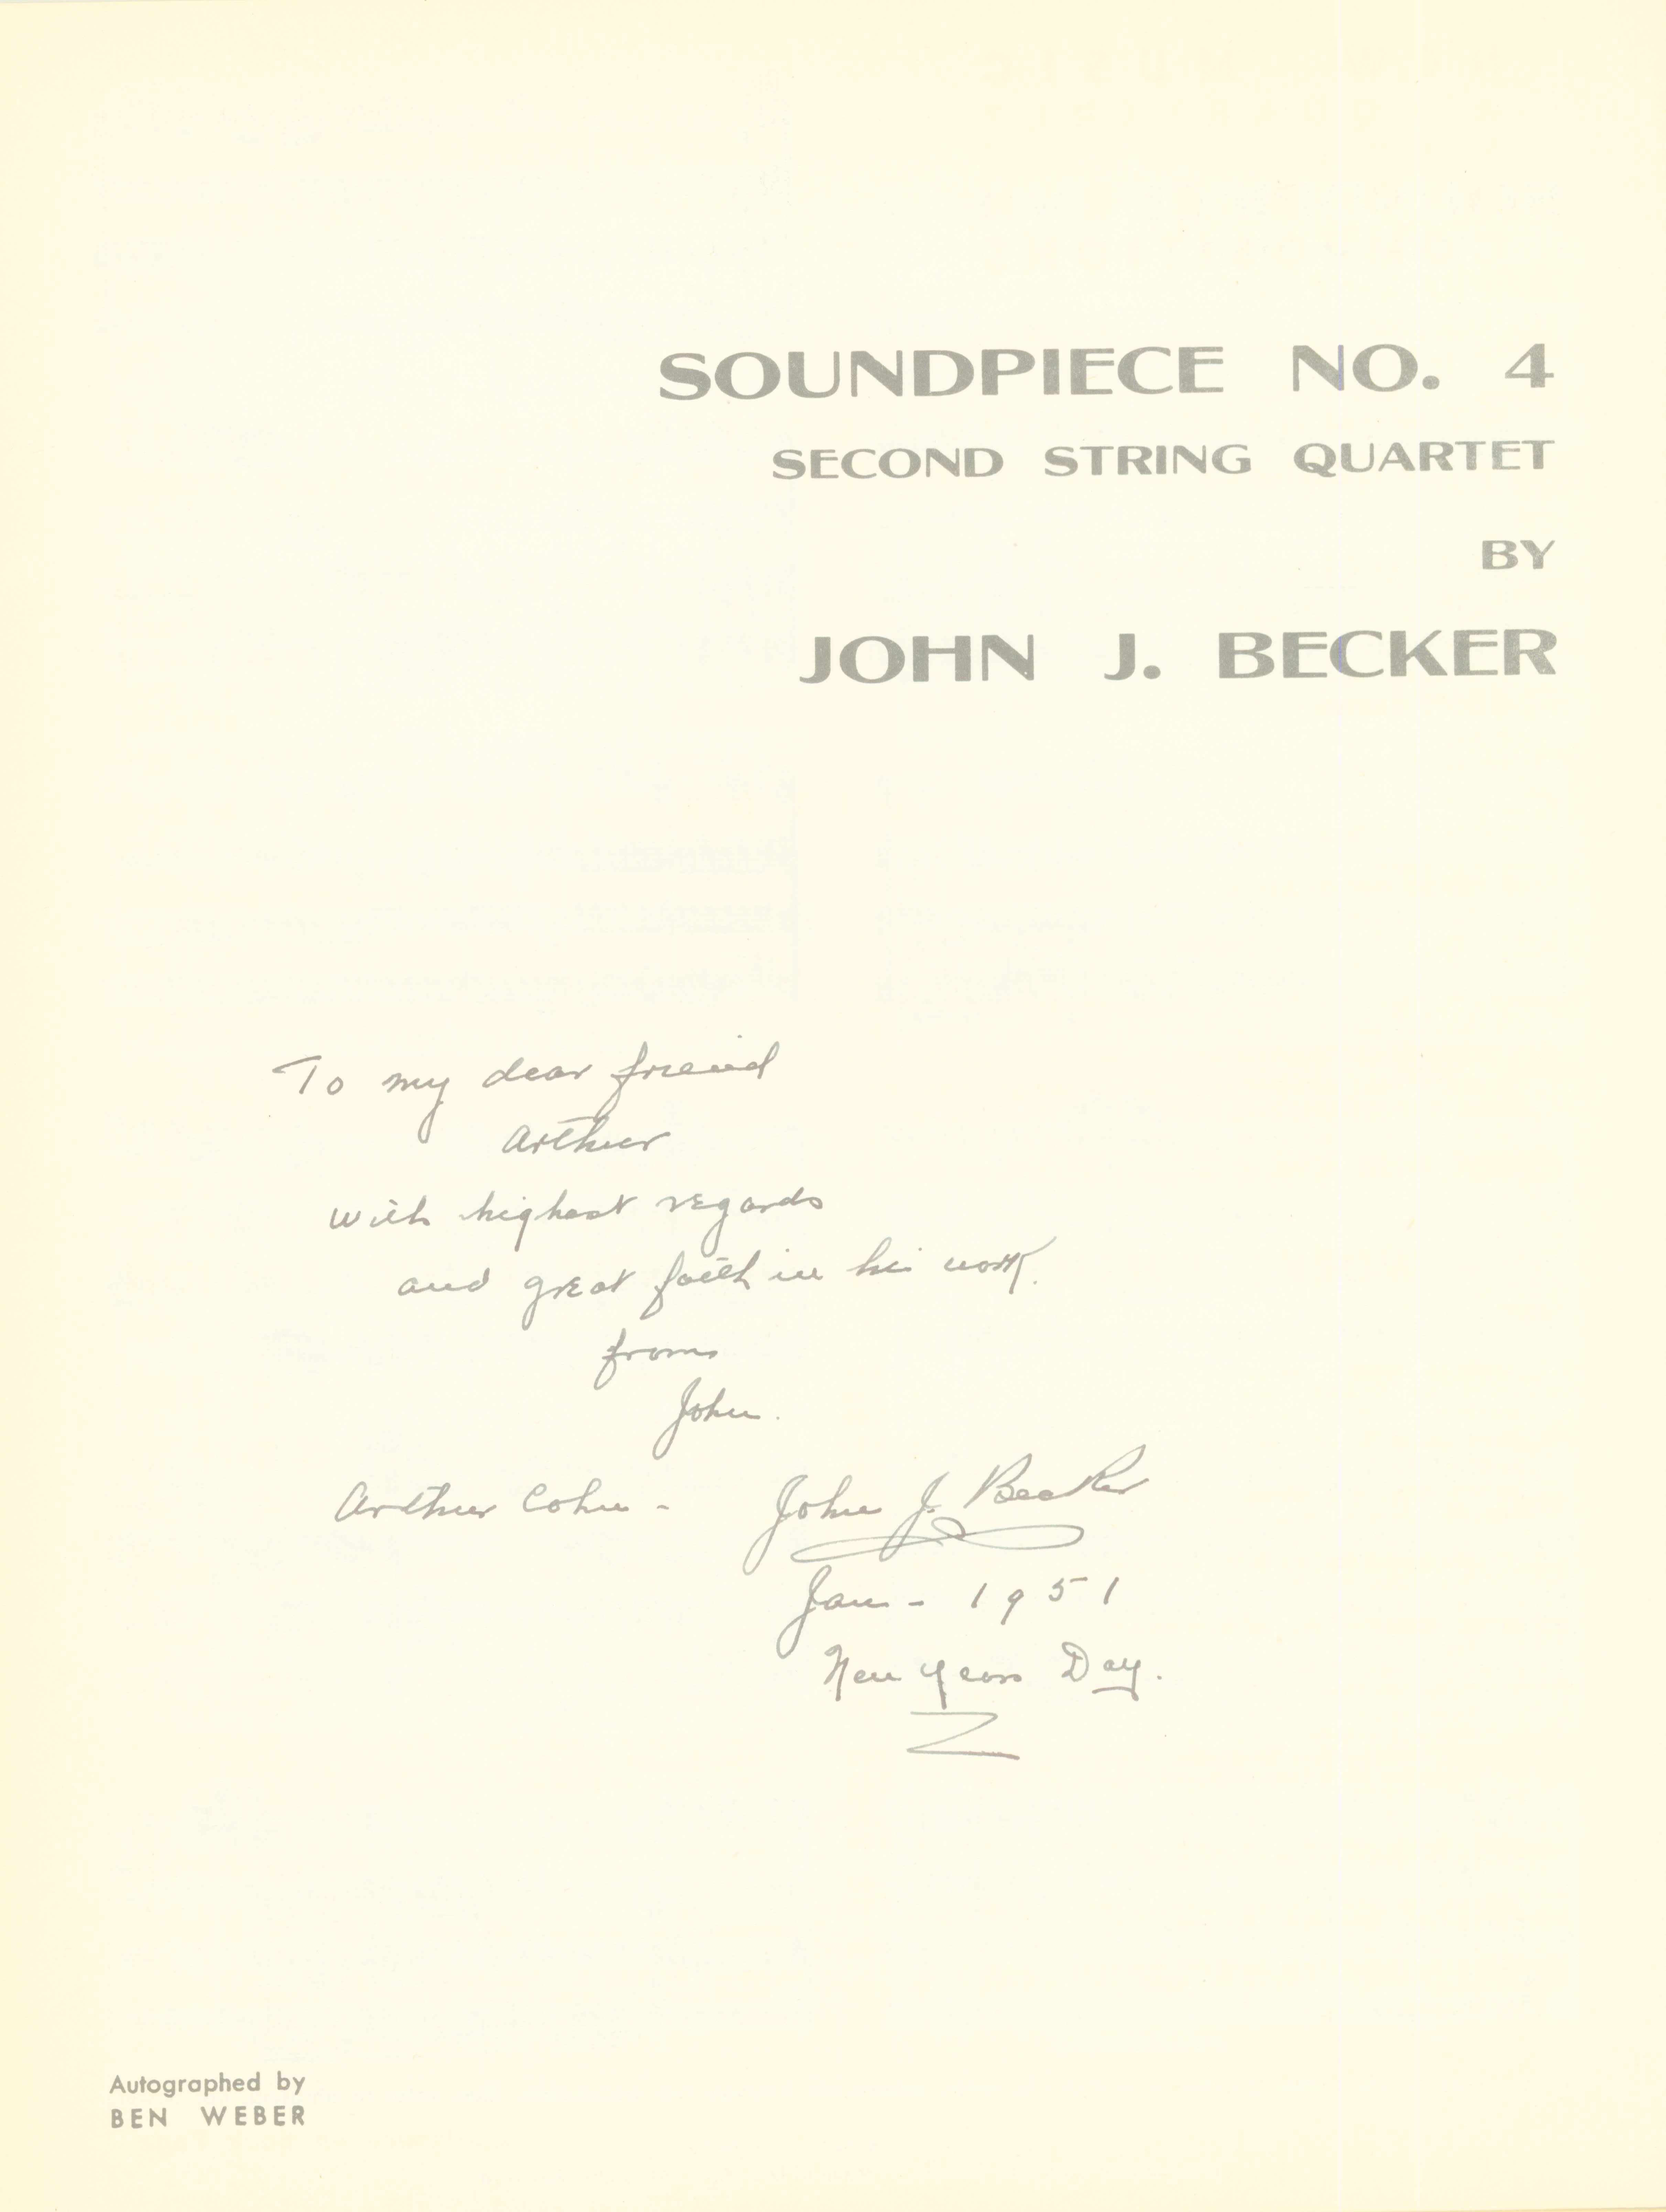 Becker, John J. - Soundpiece No. 4. Second String Quartet. - (7419)